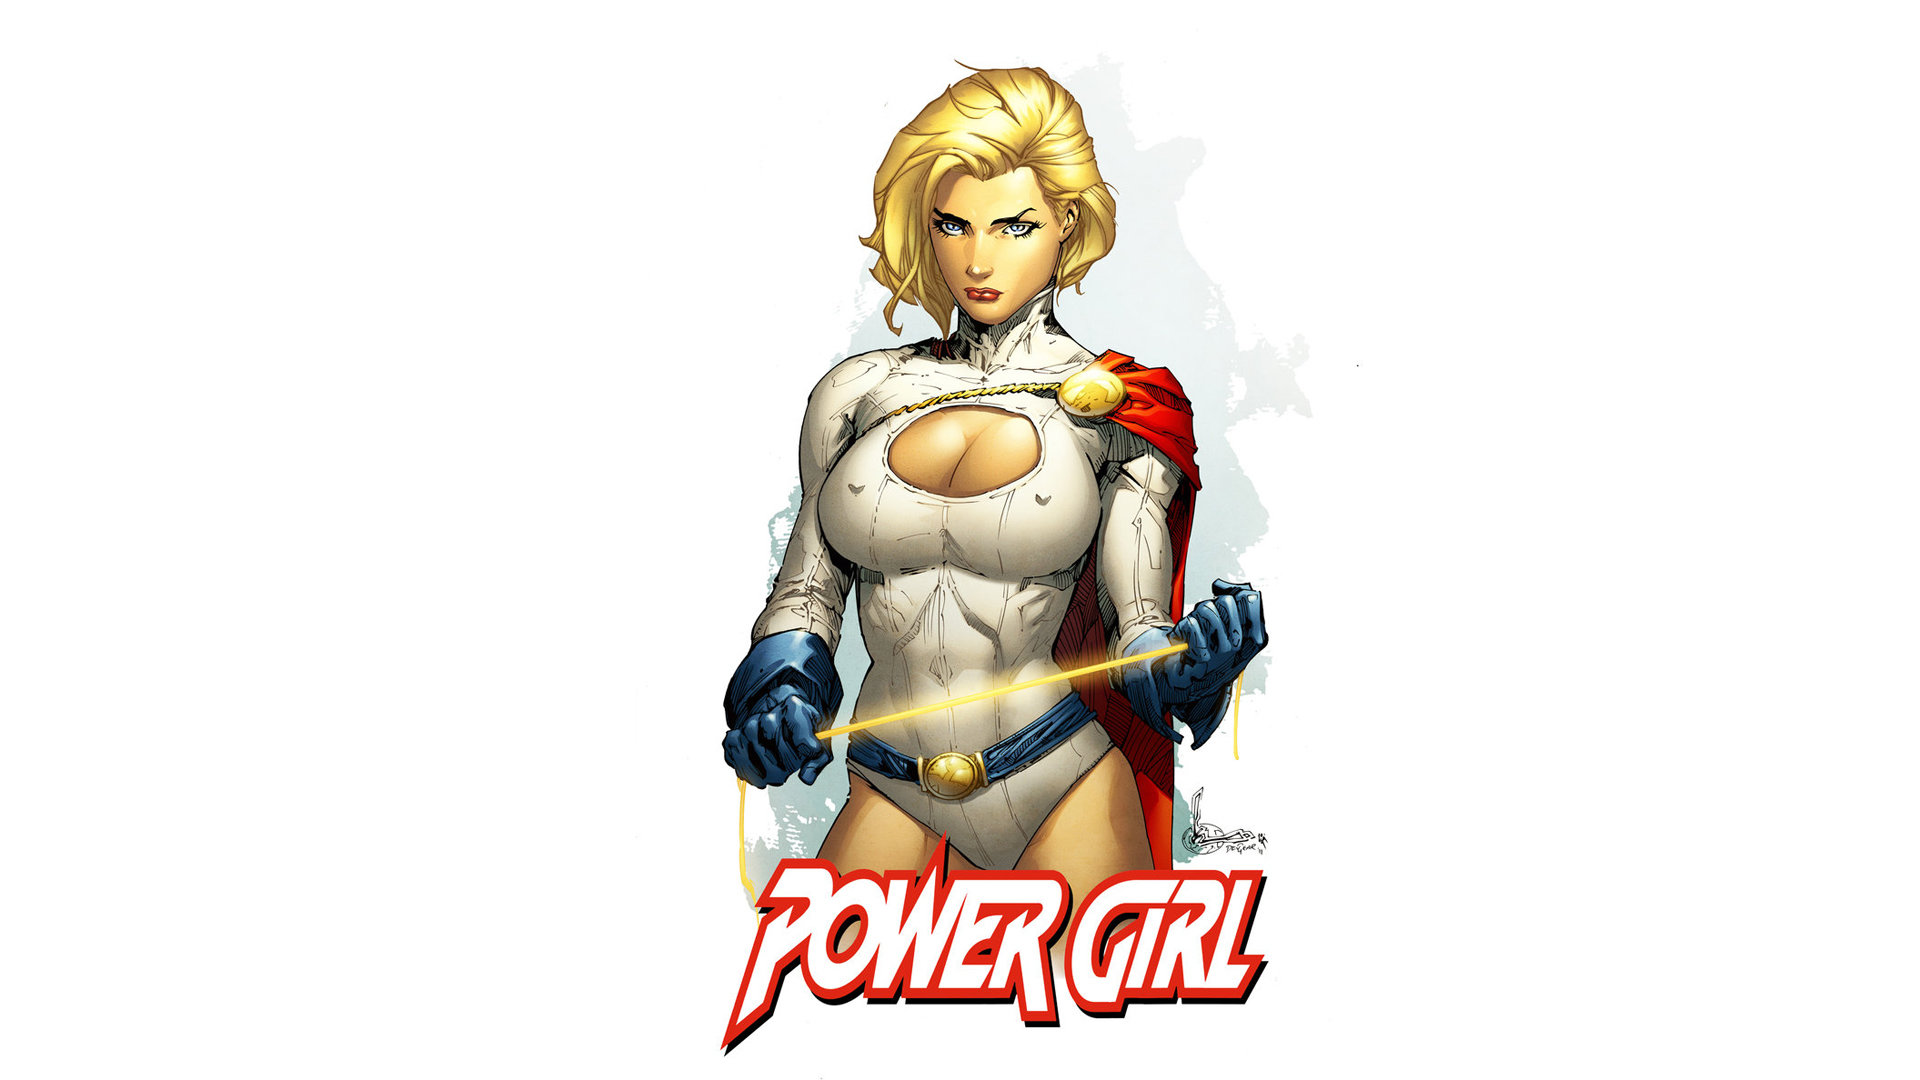 download full hd 1080p power girl pc wallpaper id:238390 for free